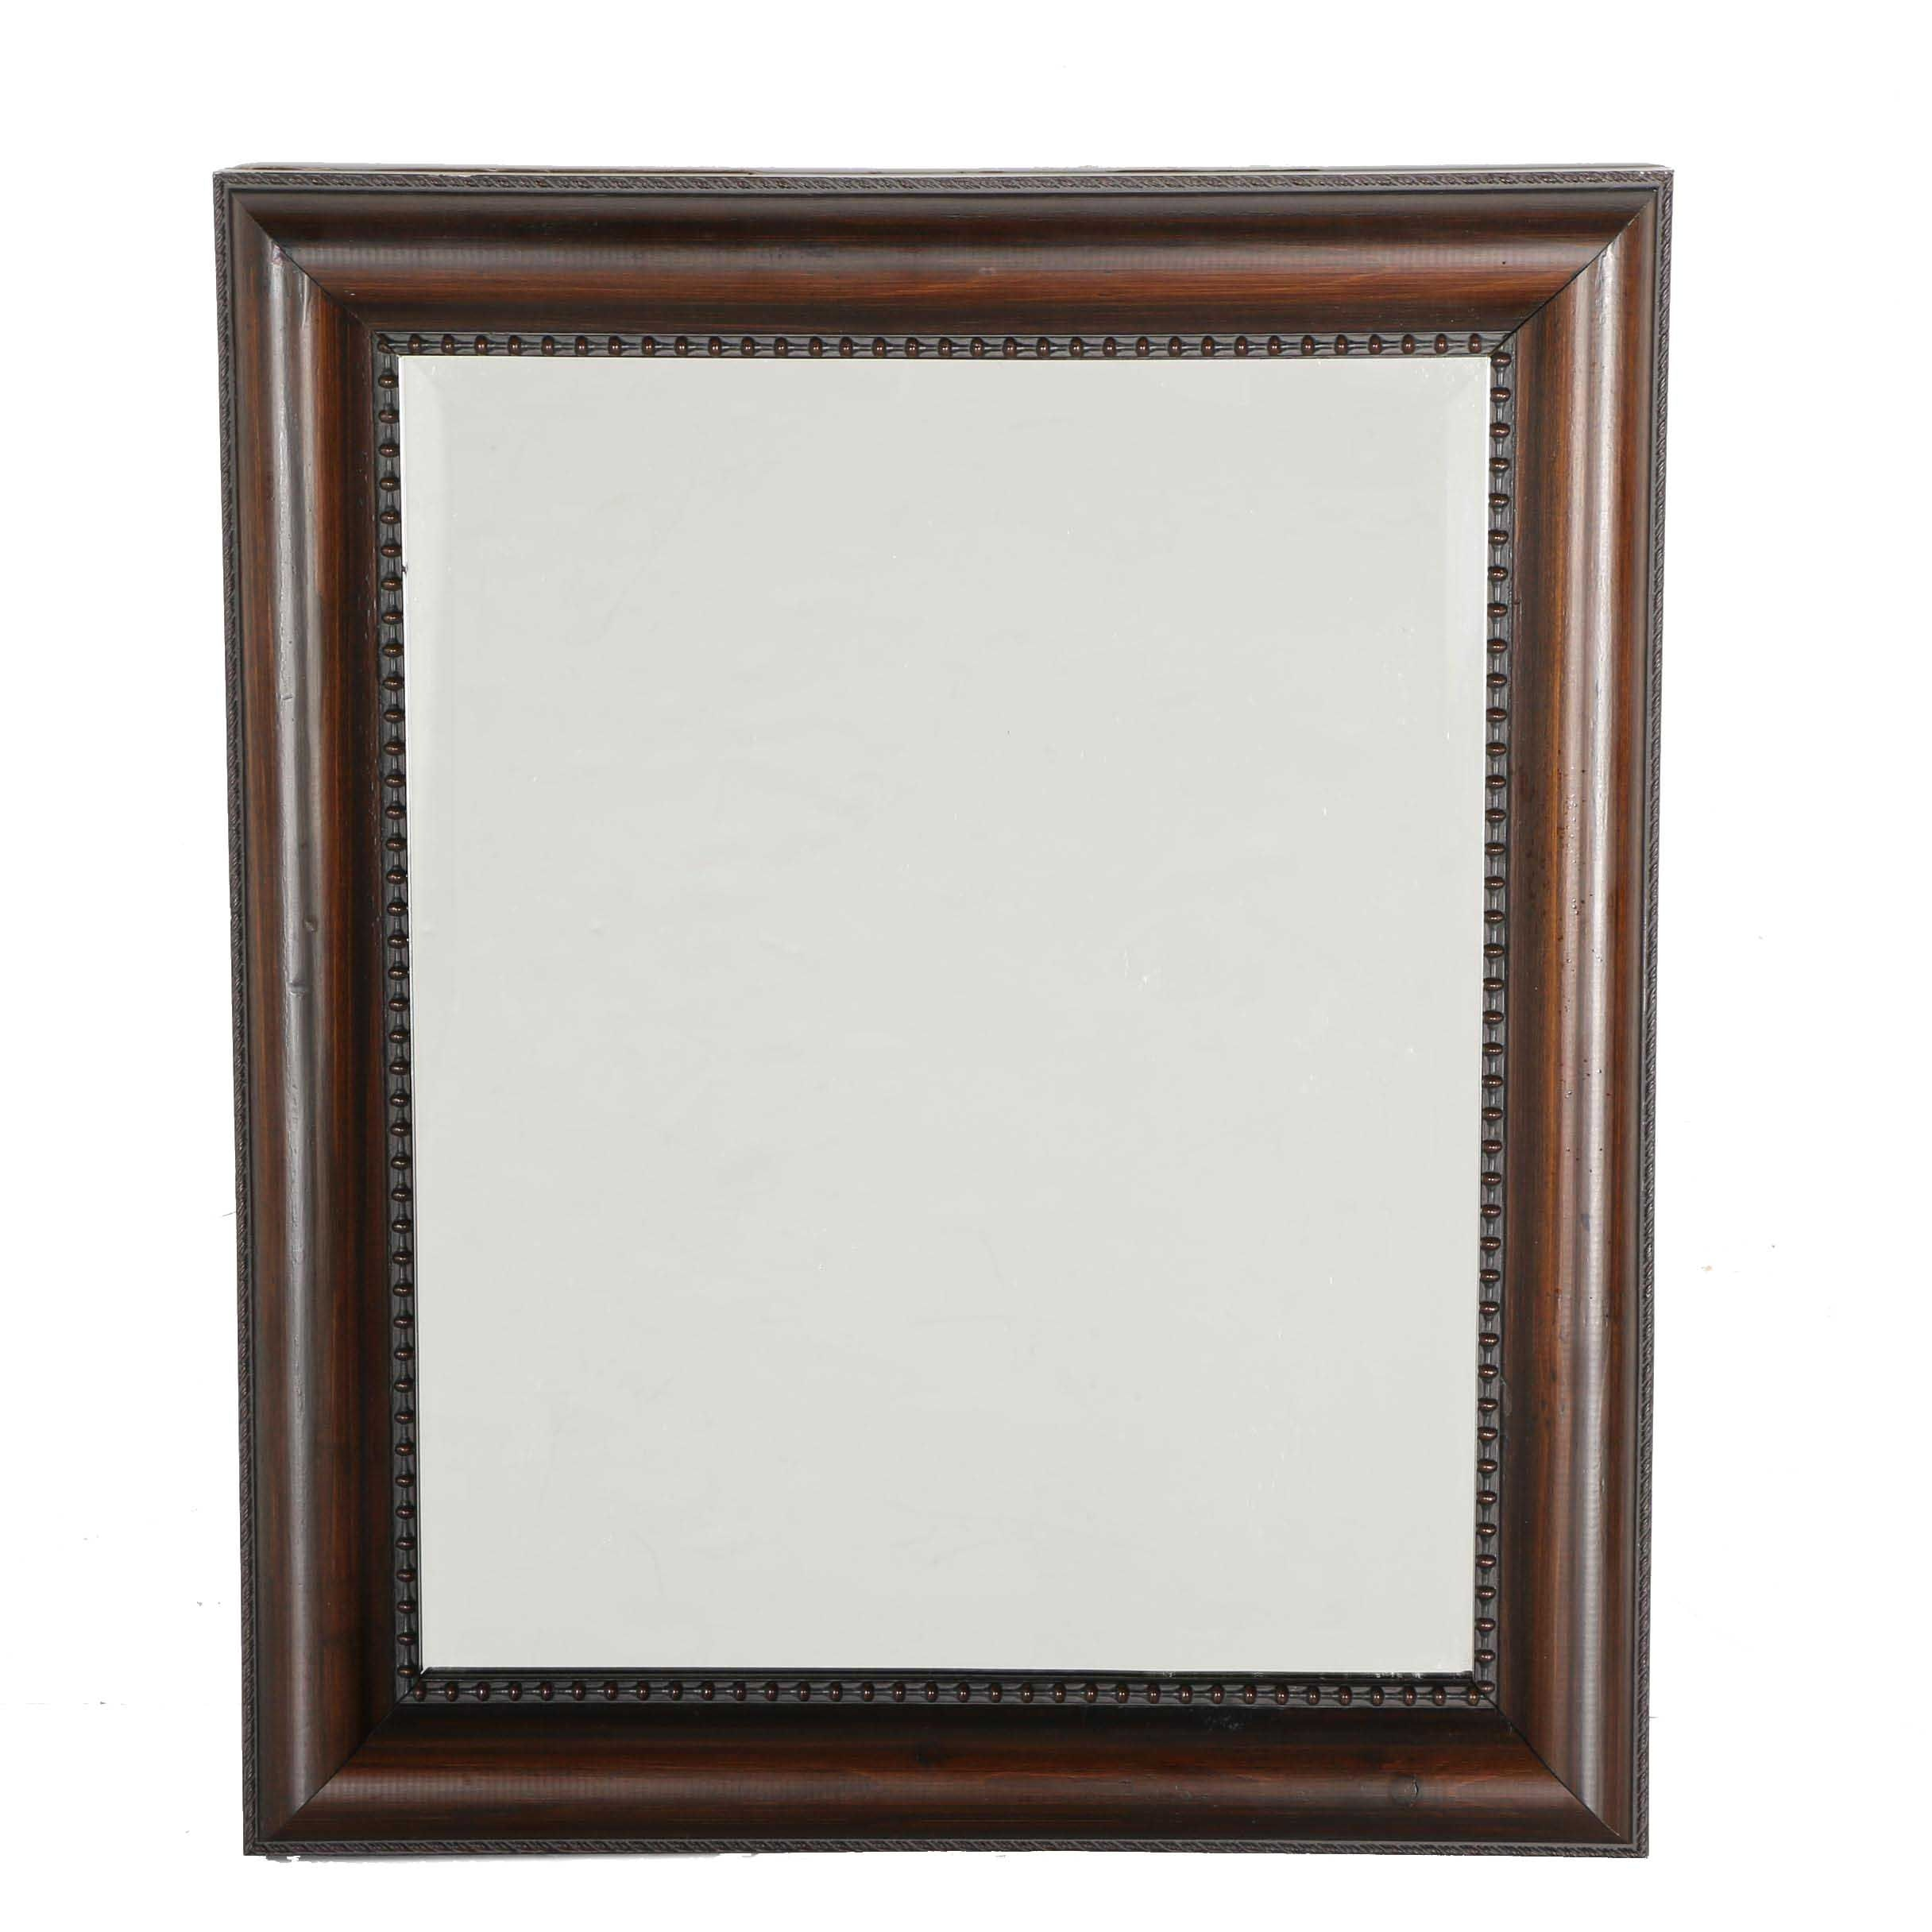 Wall Mirror with Smooth Brown Wooden Frame